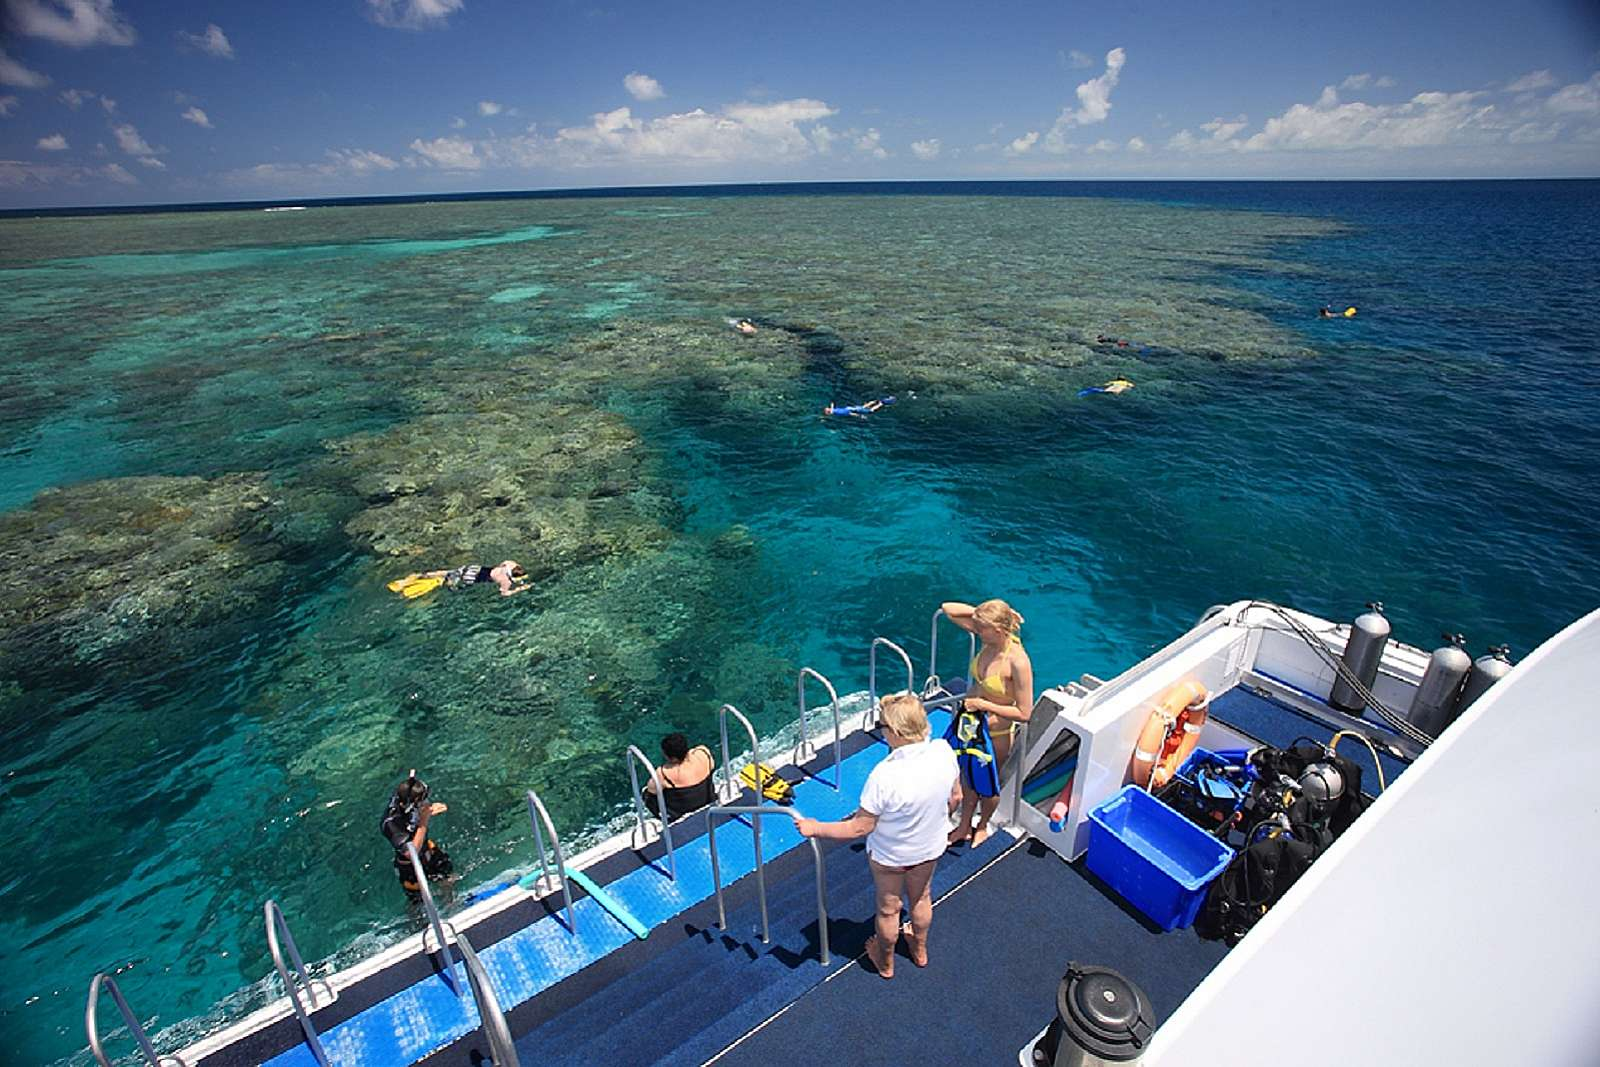 Image for Calypso Snorkel and Dive - Calypso Snorkel & Dive - Certified Diving